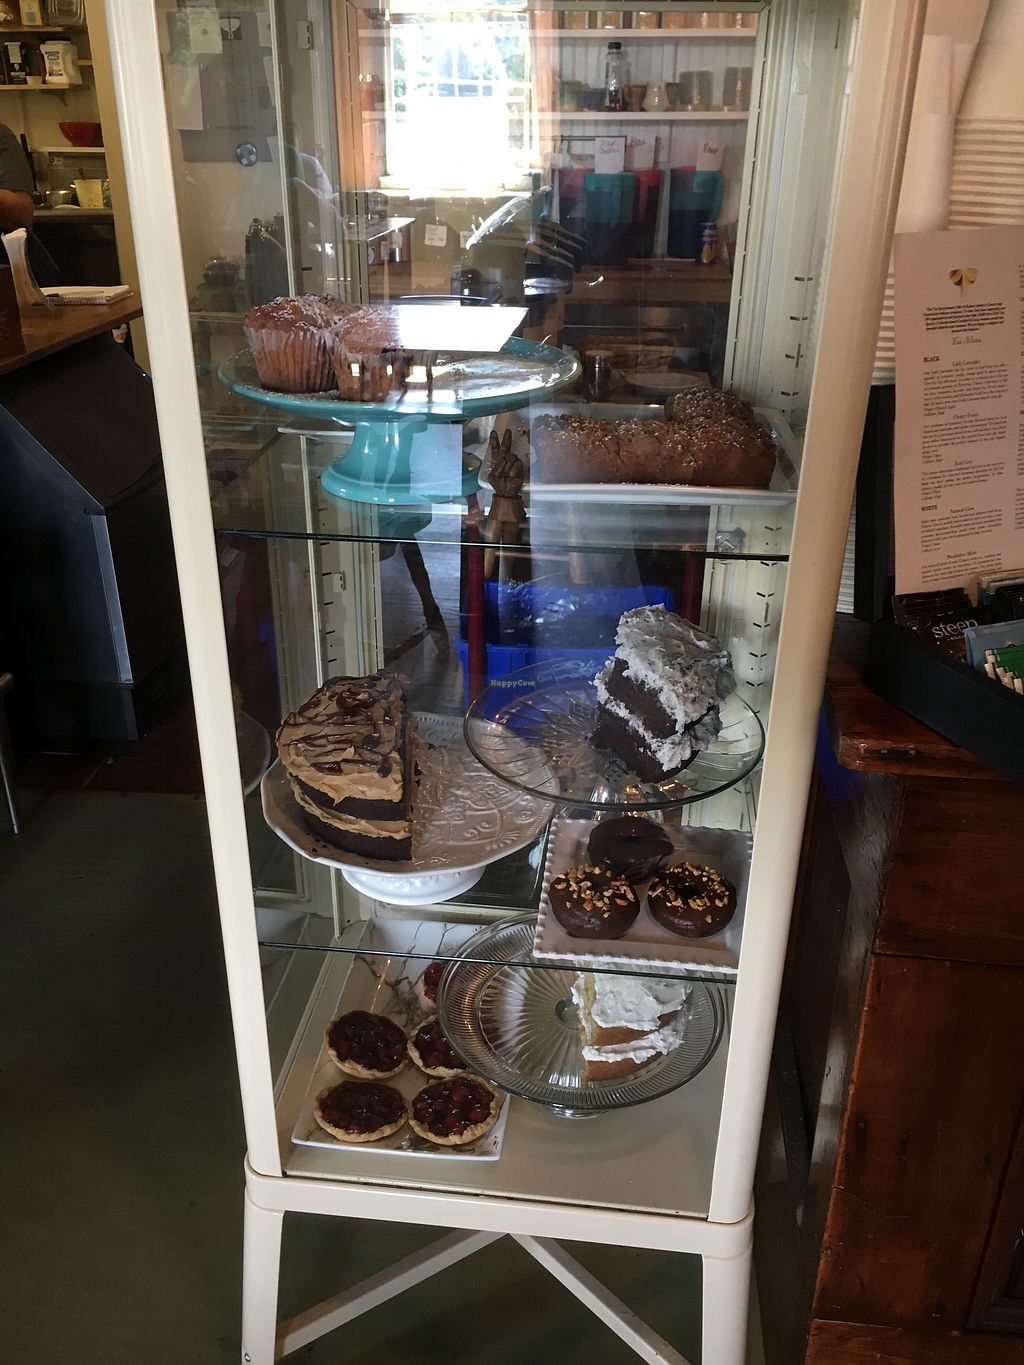 """Photo of The Moth Coffeehouse  by <a href=""""/members/profile/CharlaCharestHicks"""">CharlaCharestHicks</a> <br/>All desserts on a white or clear plate were vegan! Tarts, crumbles, cakes, and donuts! <br/> July 18, 2017  - <a href='/contact/abuse/image/64726/281841'>Report</a>"""